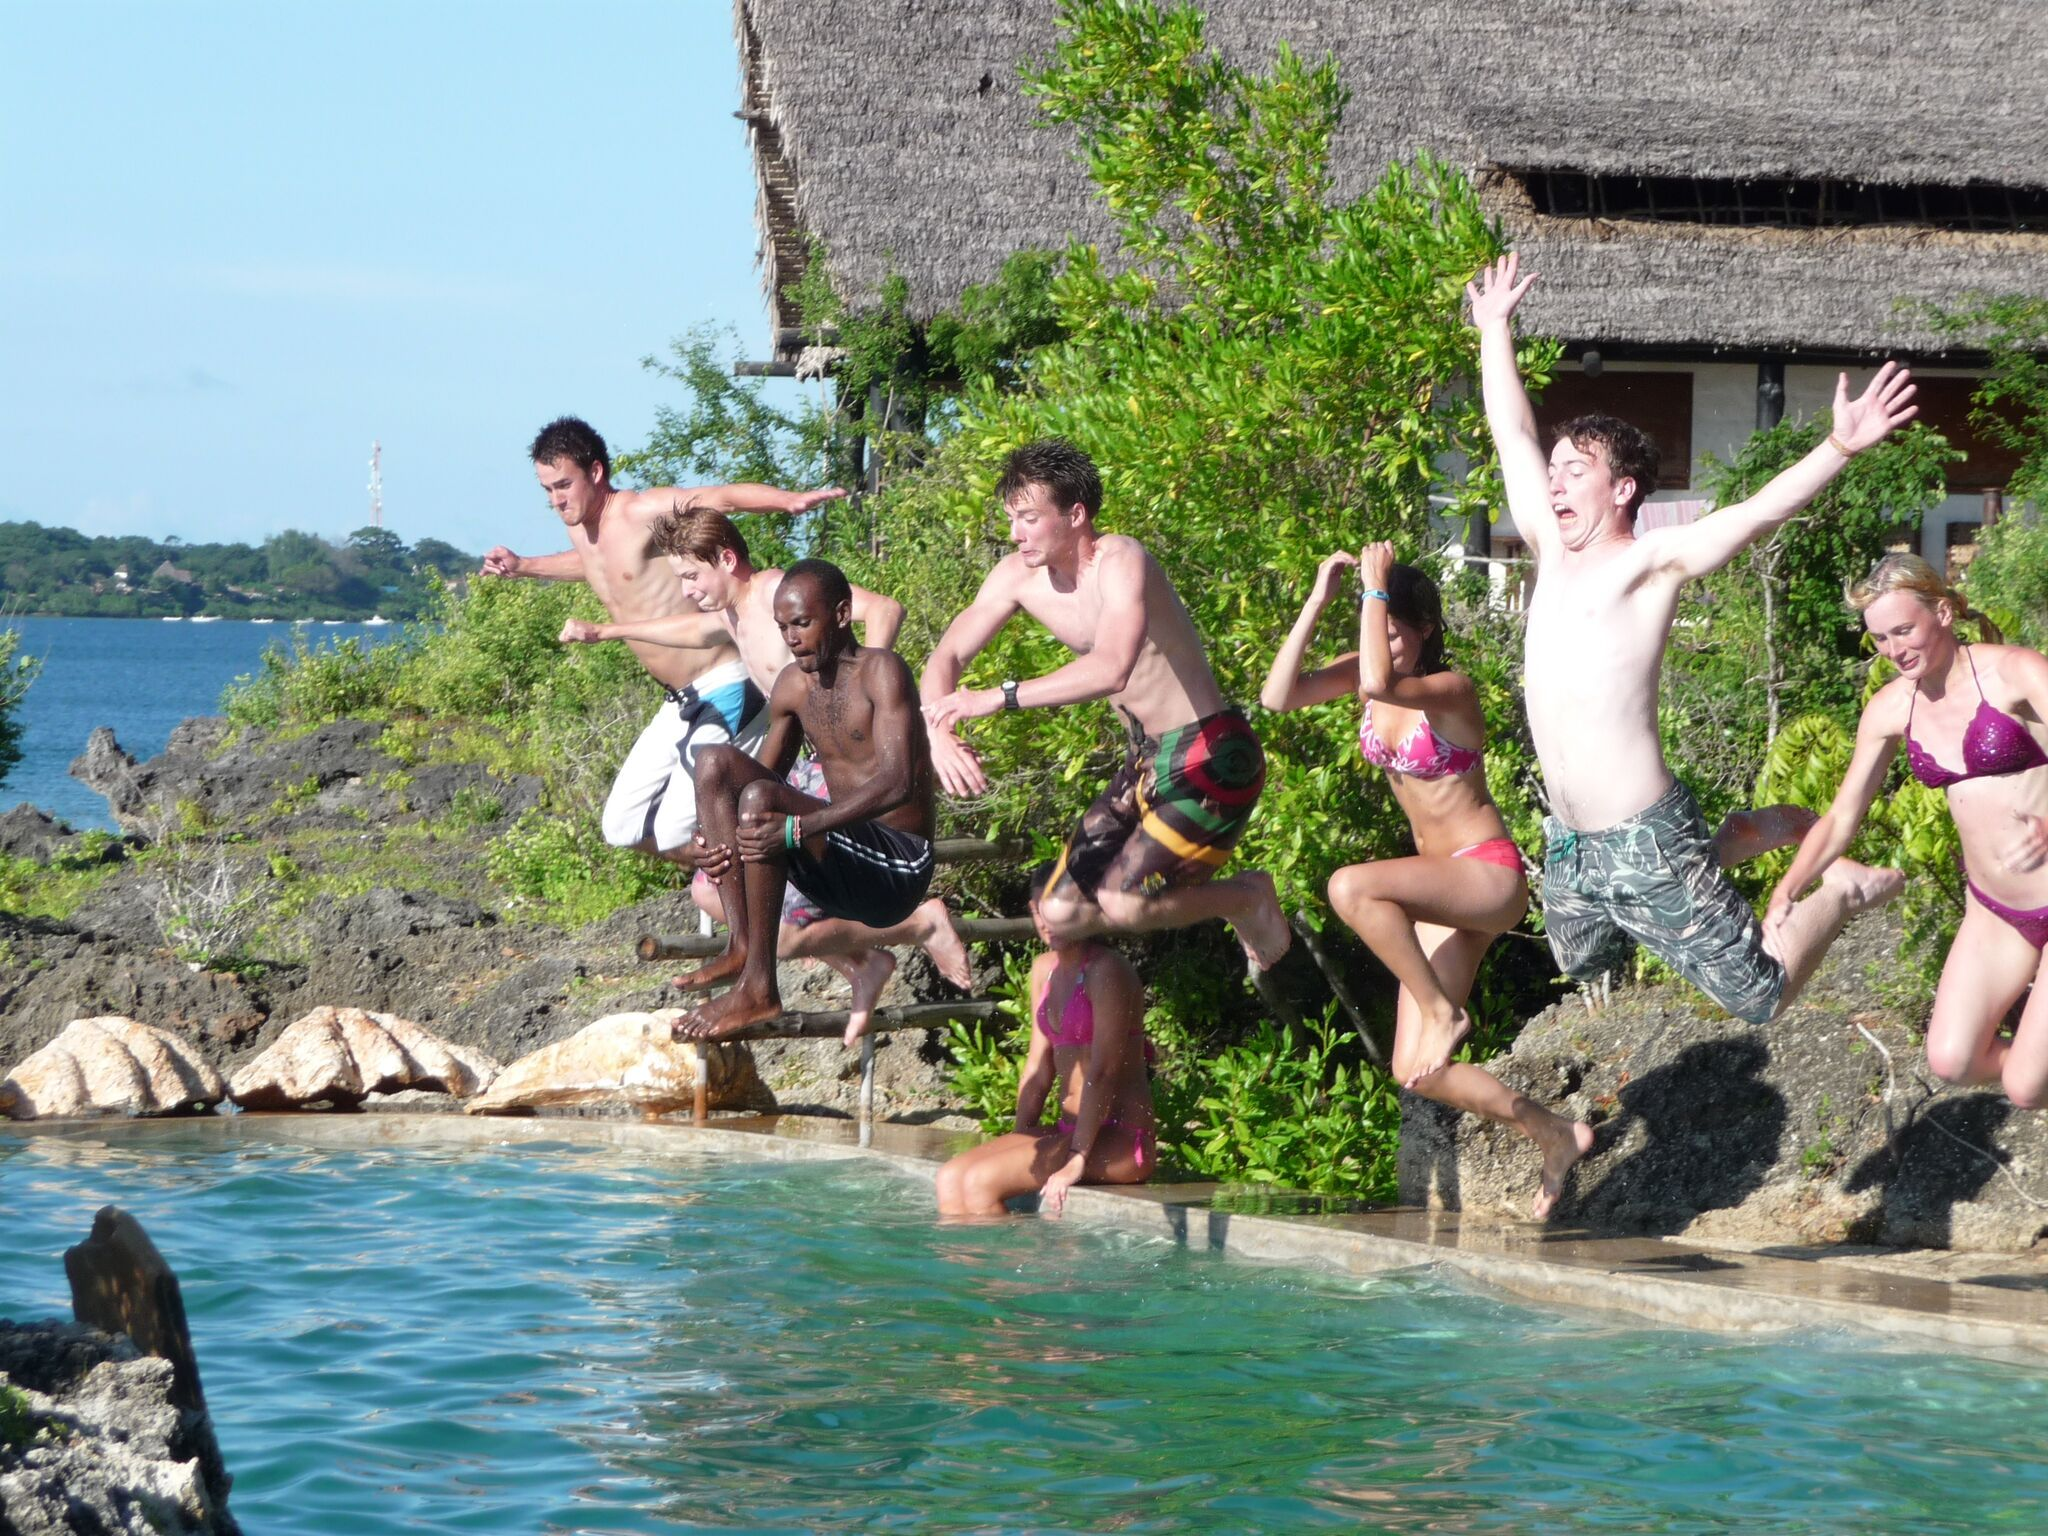 Have fun and relax on your Gap Year to Kenya